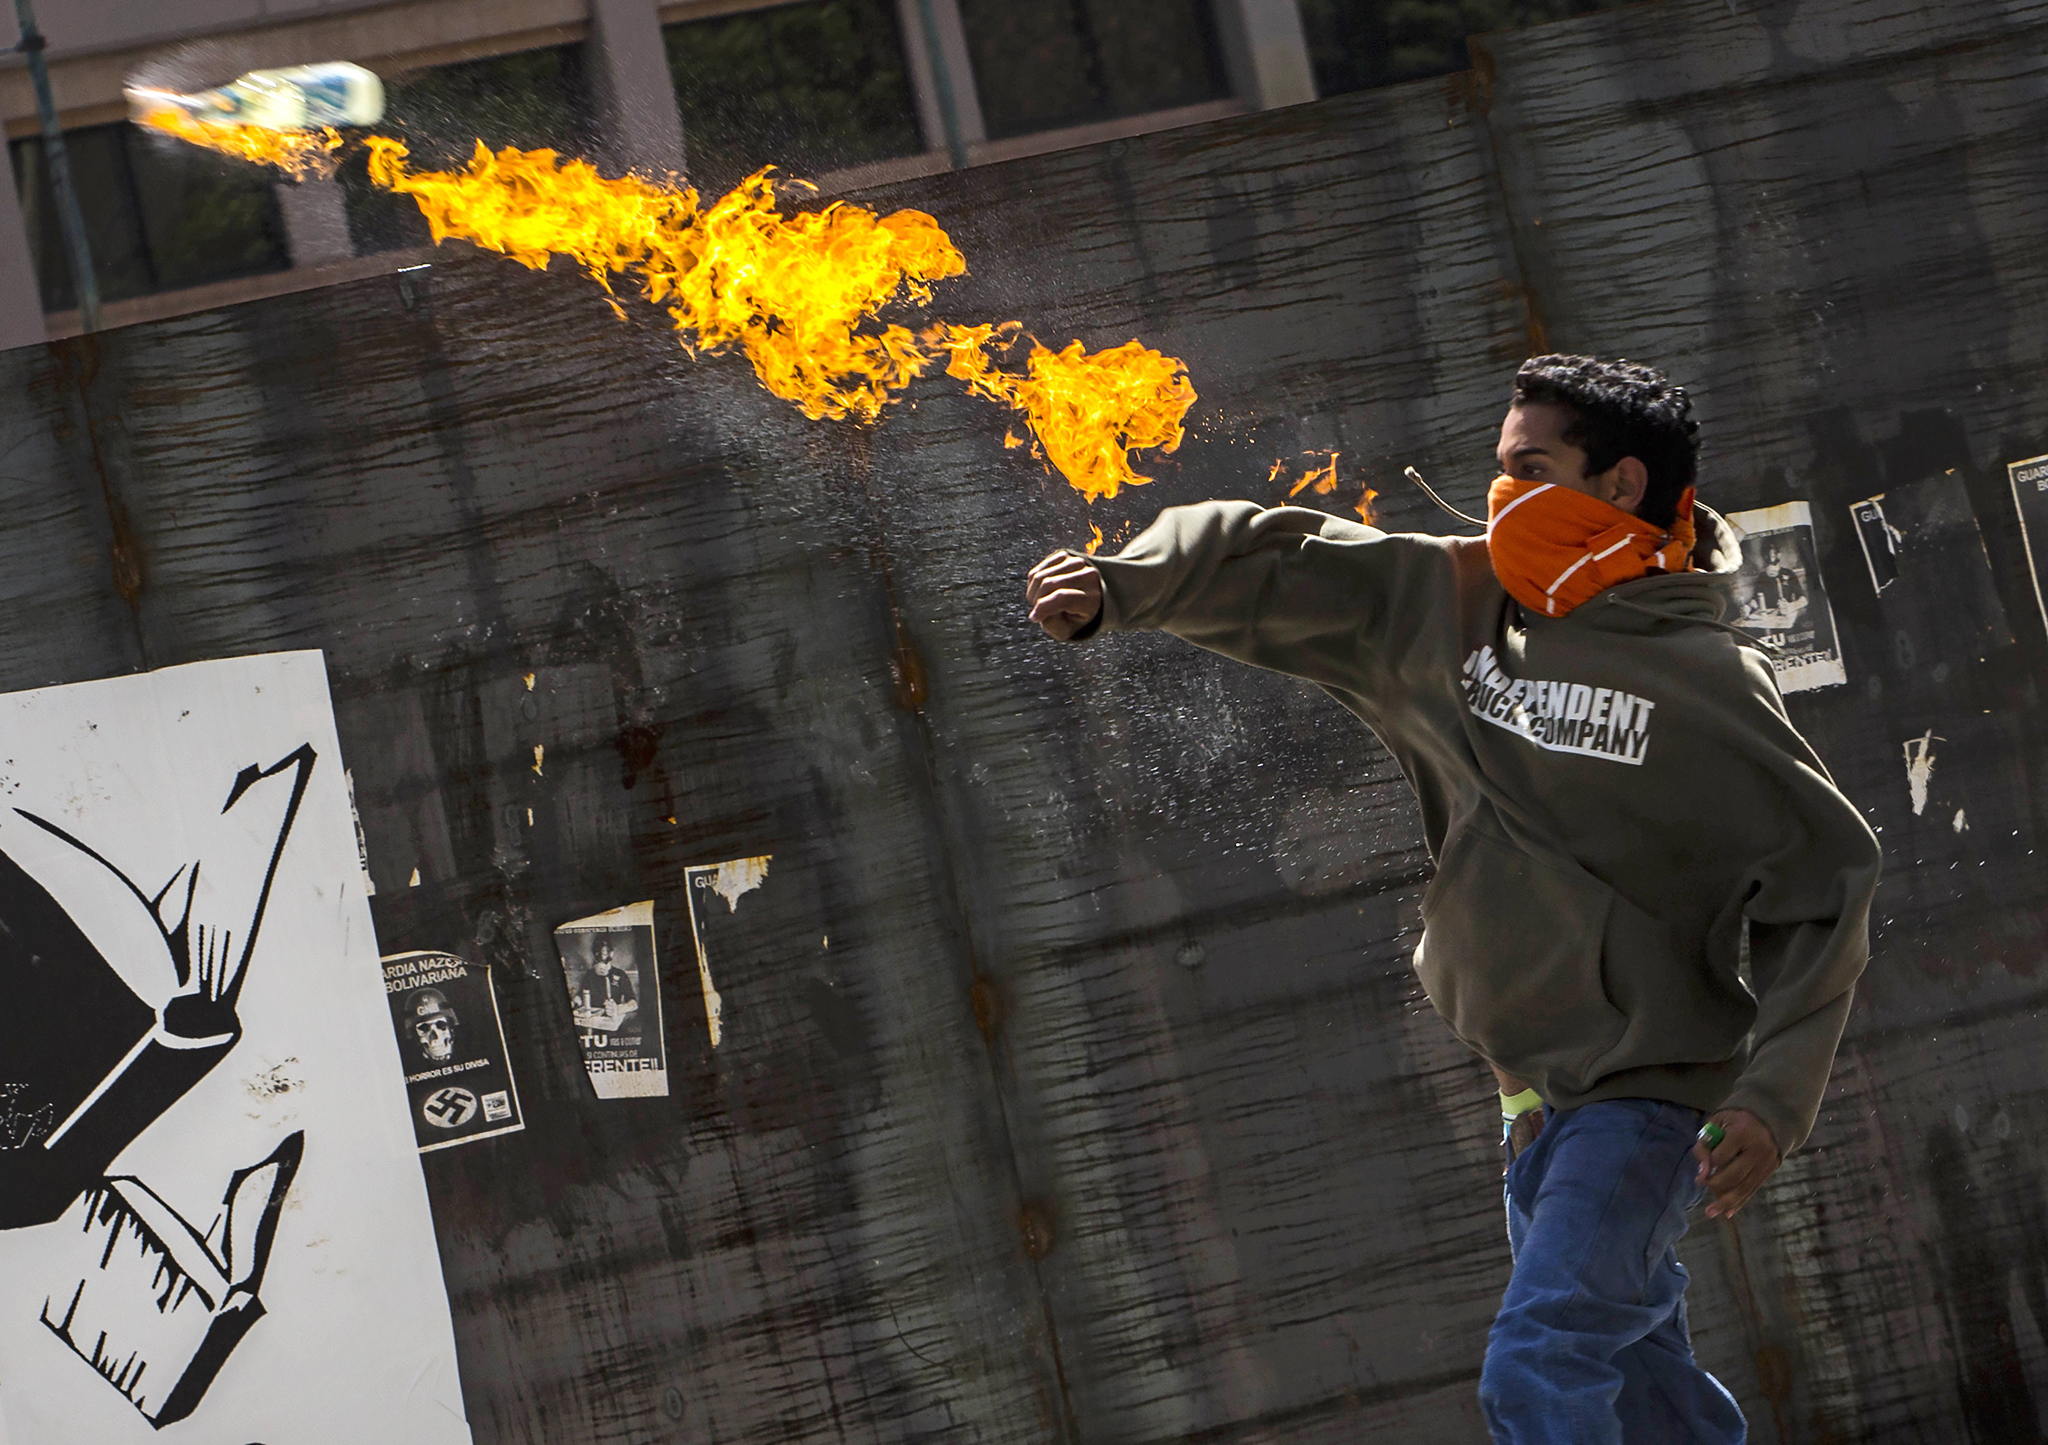 A protester throws a molotov cocktail at Bolivarian National Police during a protest against the government of President Nicolas Maduro in Caracas, Venezuela, Tuesday, June 24, 2014. University students and government opponents protested in the east of the capital and demanded the release of people who have been arrested in street demonstrations in recent months. (AP Photo/Ramon Espinosa)